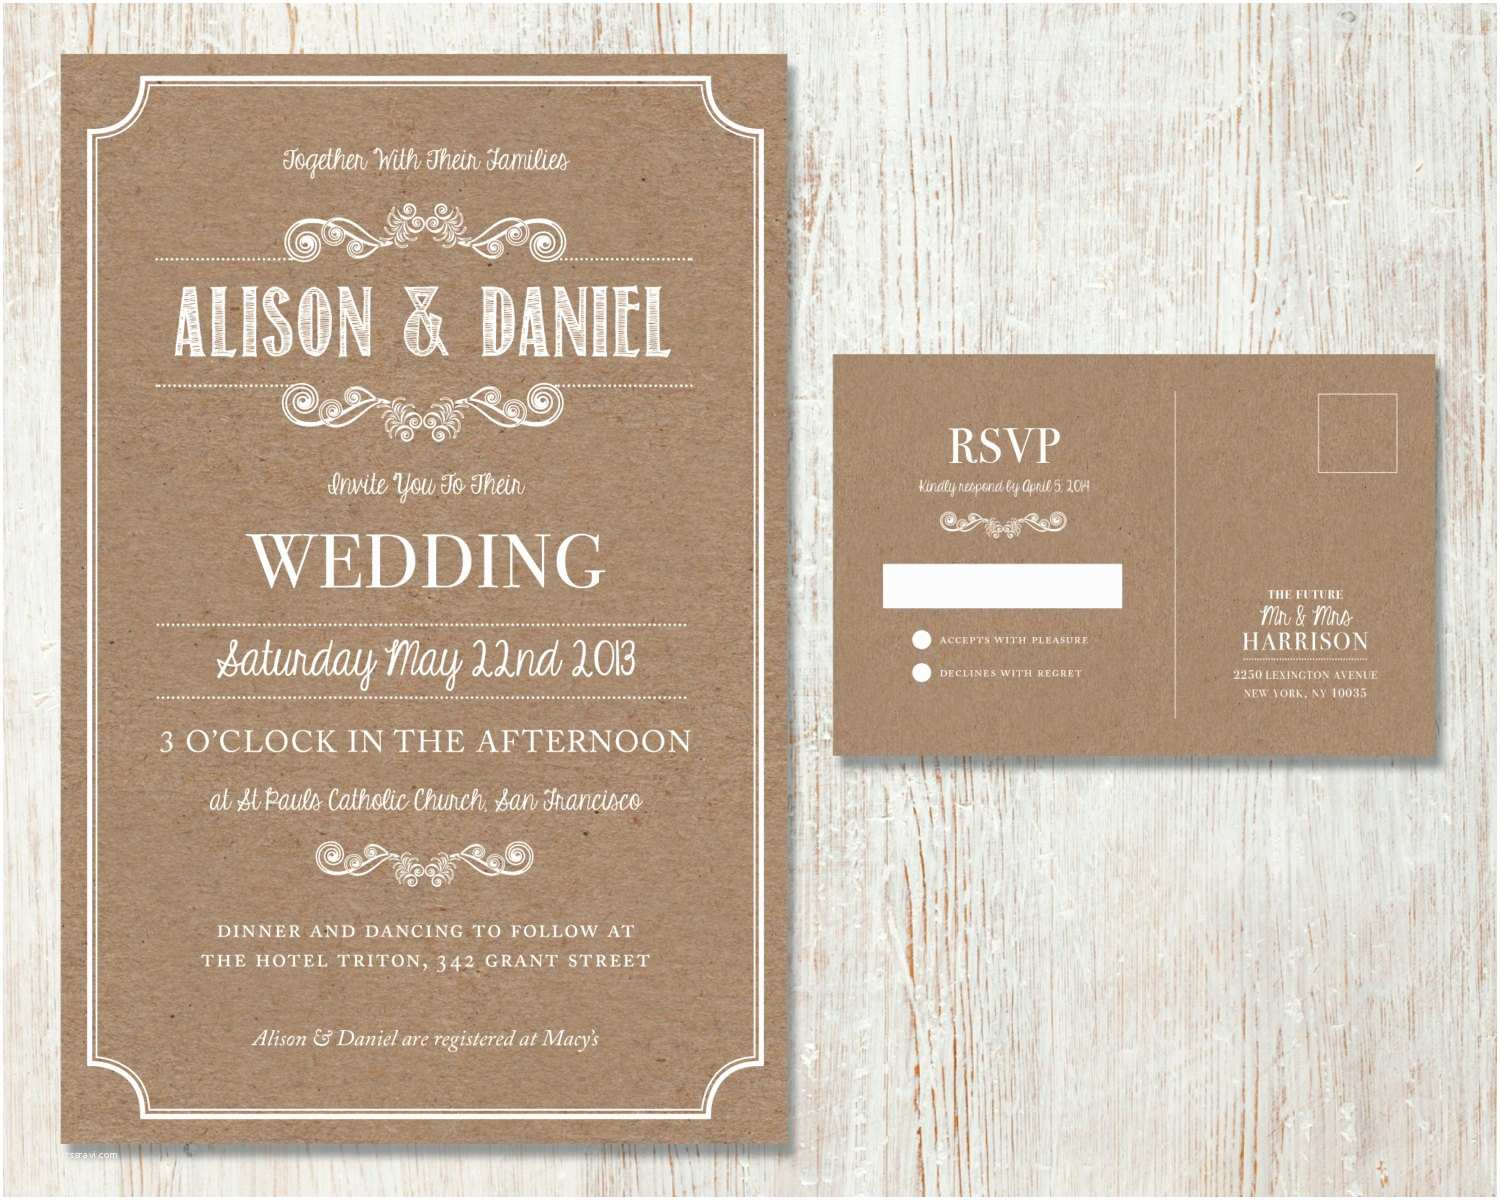 Rustic Wedding Invitation Sets Rustic Wedding Invitation Set Vintage Kraft Design Country